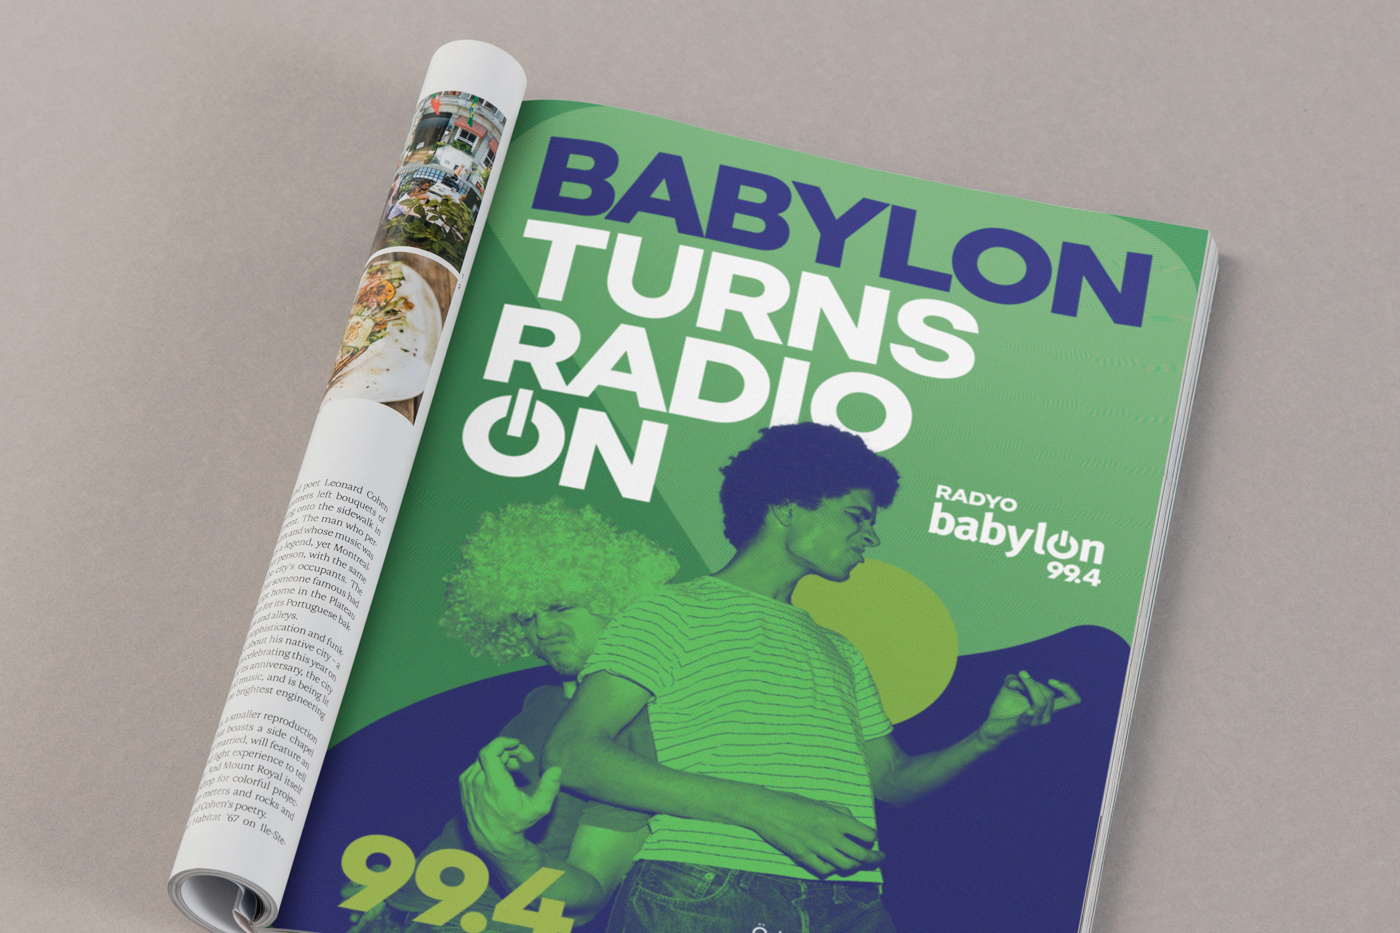 Radyo Babylon Key Visuals